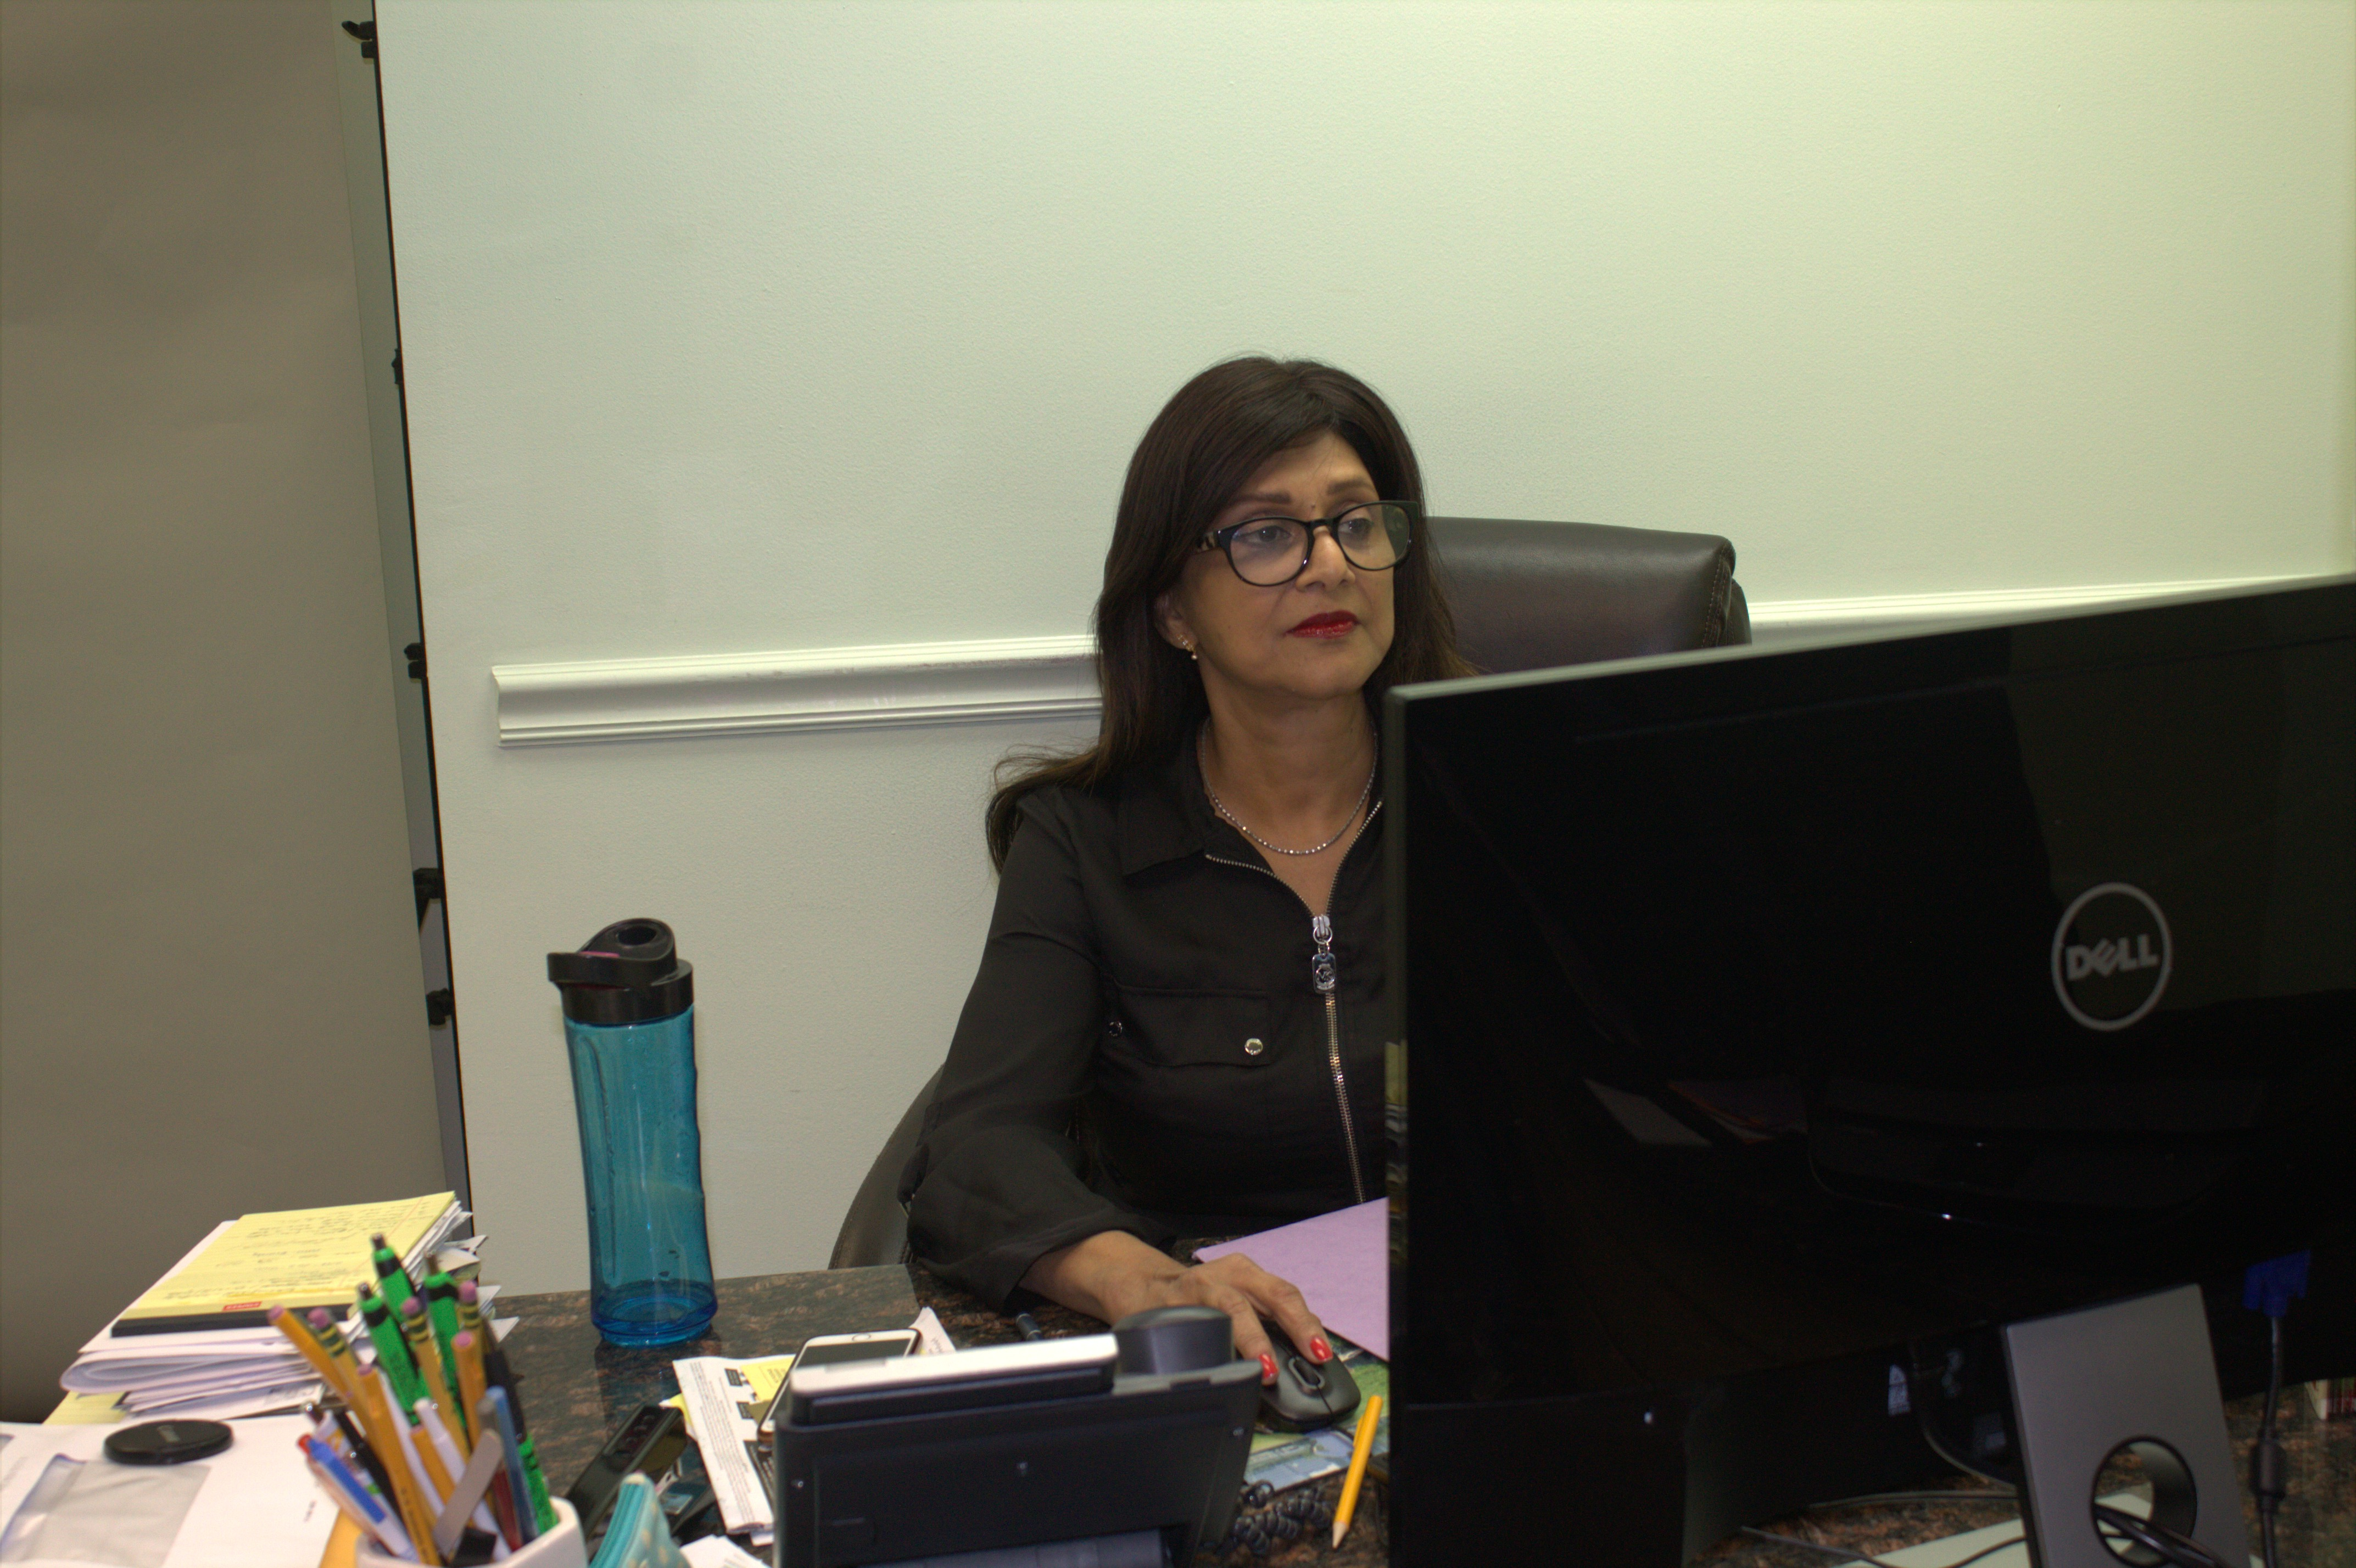 Dr. Baig at her desk